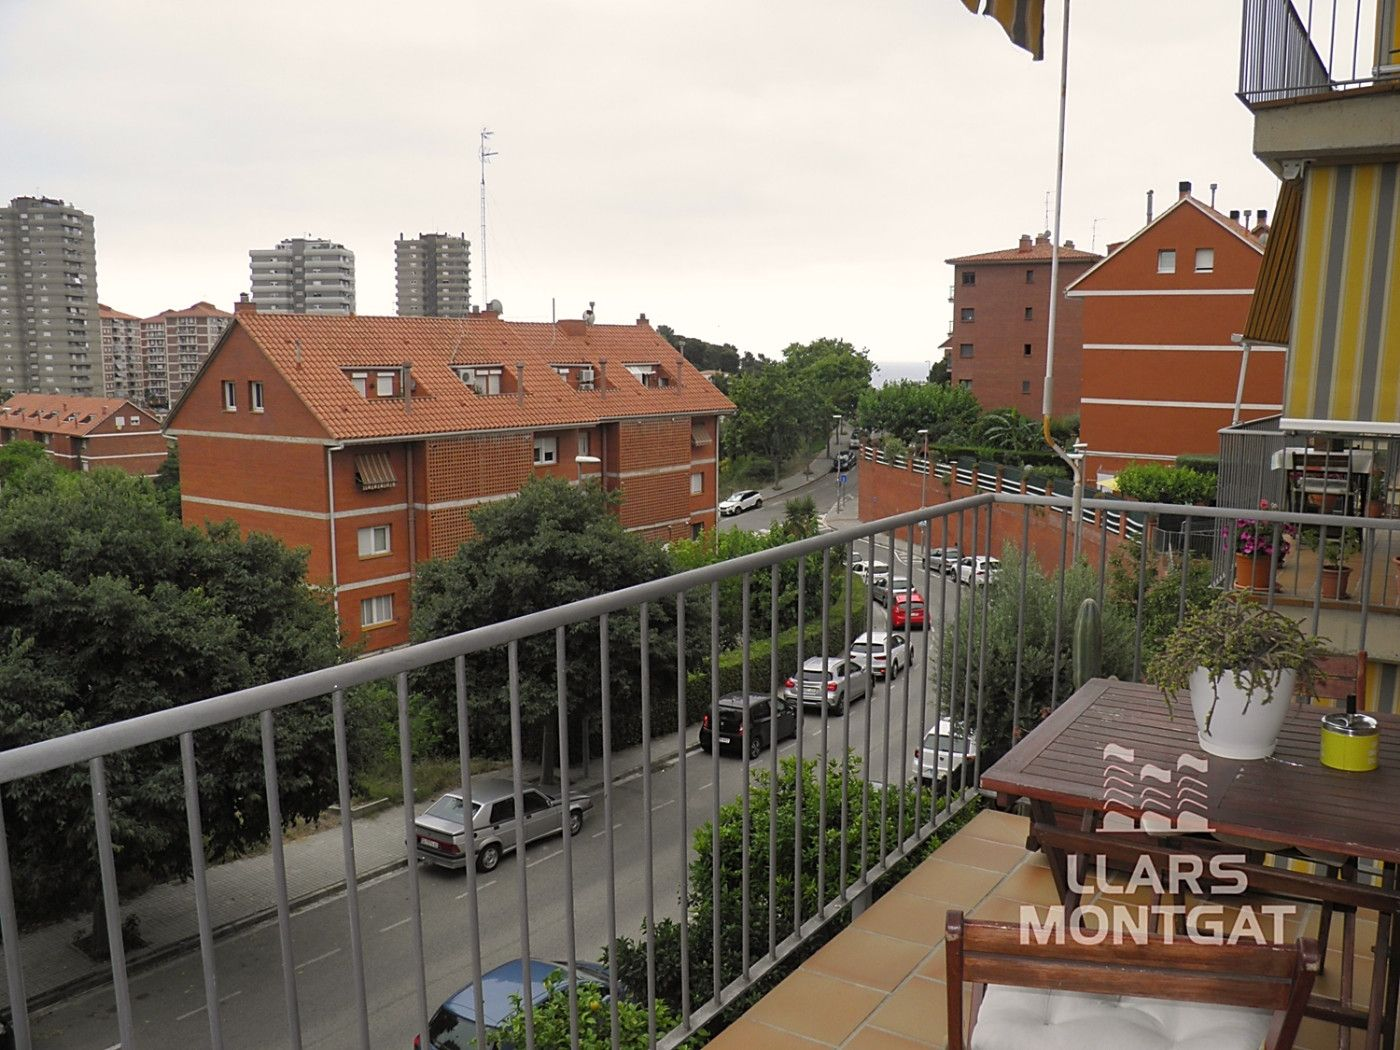 Piso  Avinguda vilares (de les). Impecable piso 3hab. parking